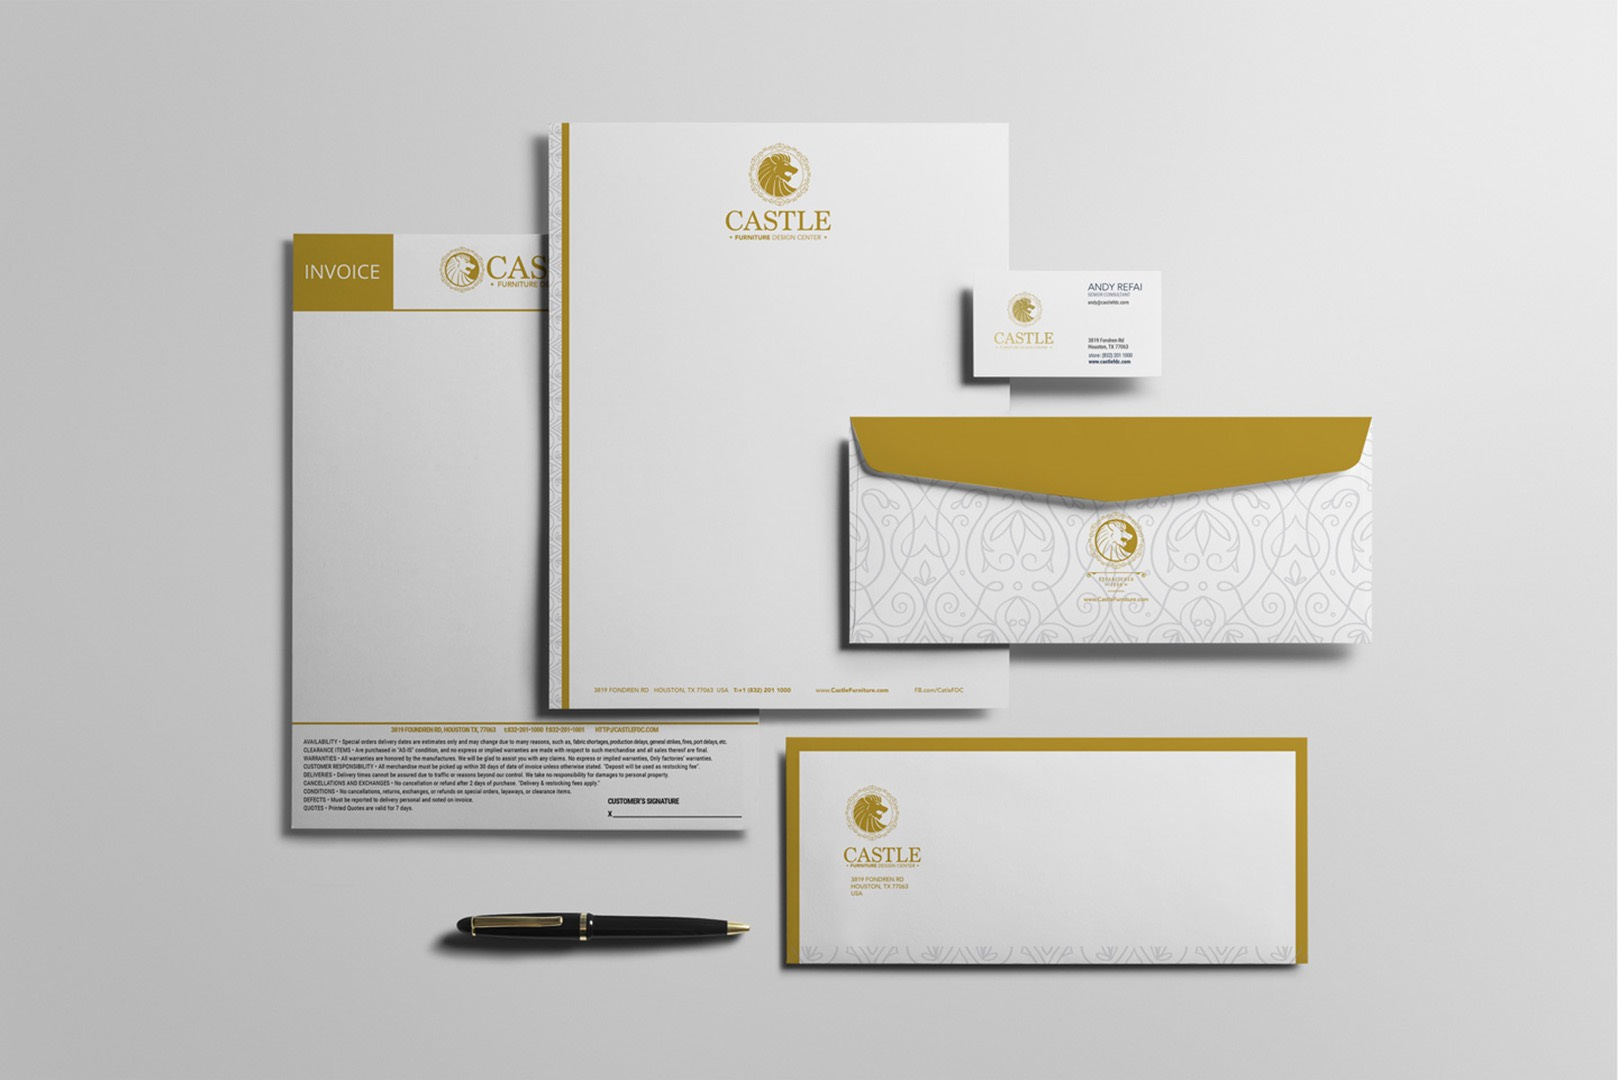 Business card, envelope, letterhead and corporate identity design